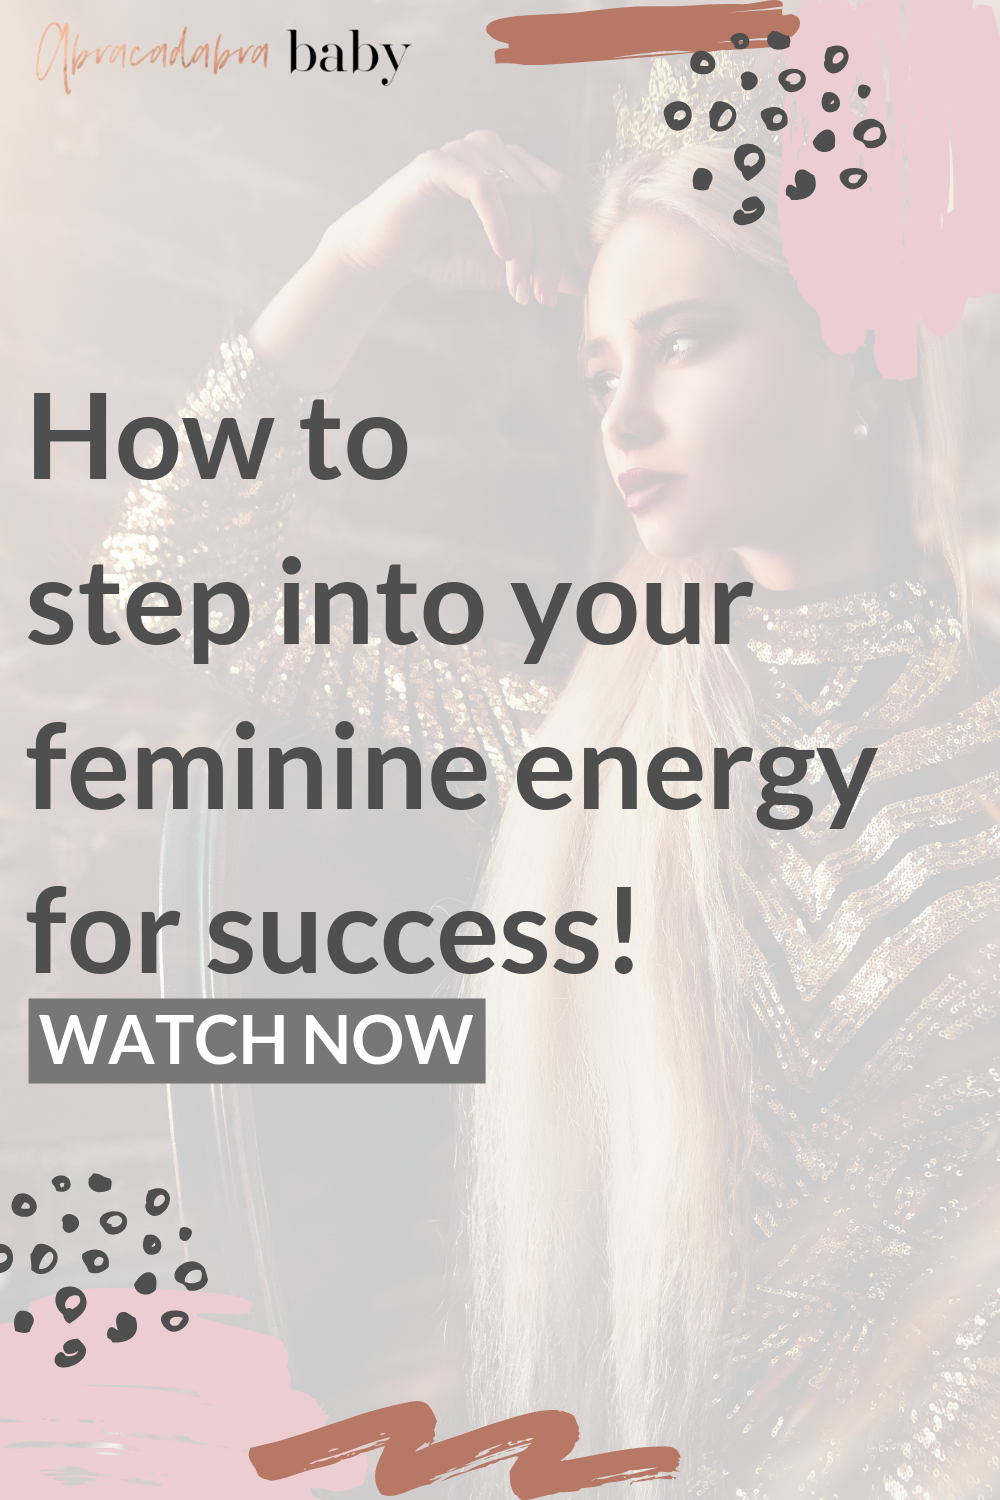 Most female entrepreneurs focus on their masculine energy